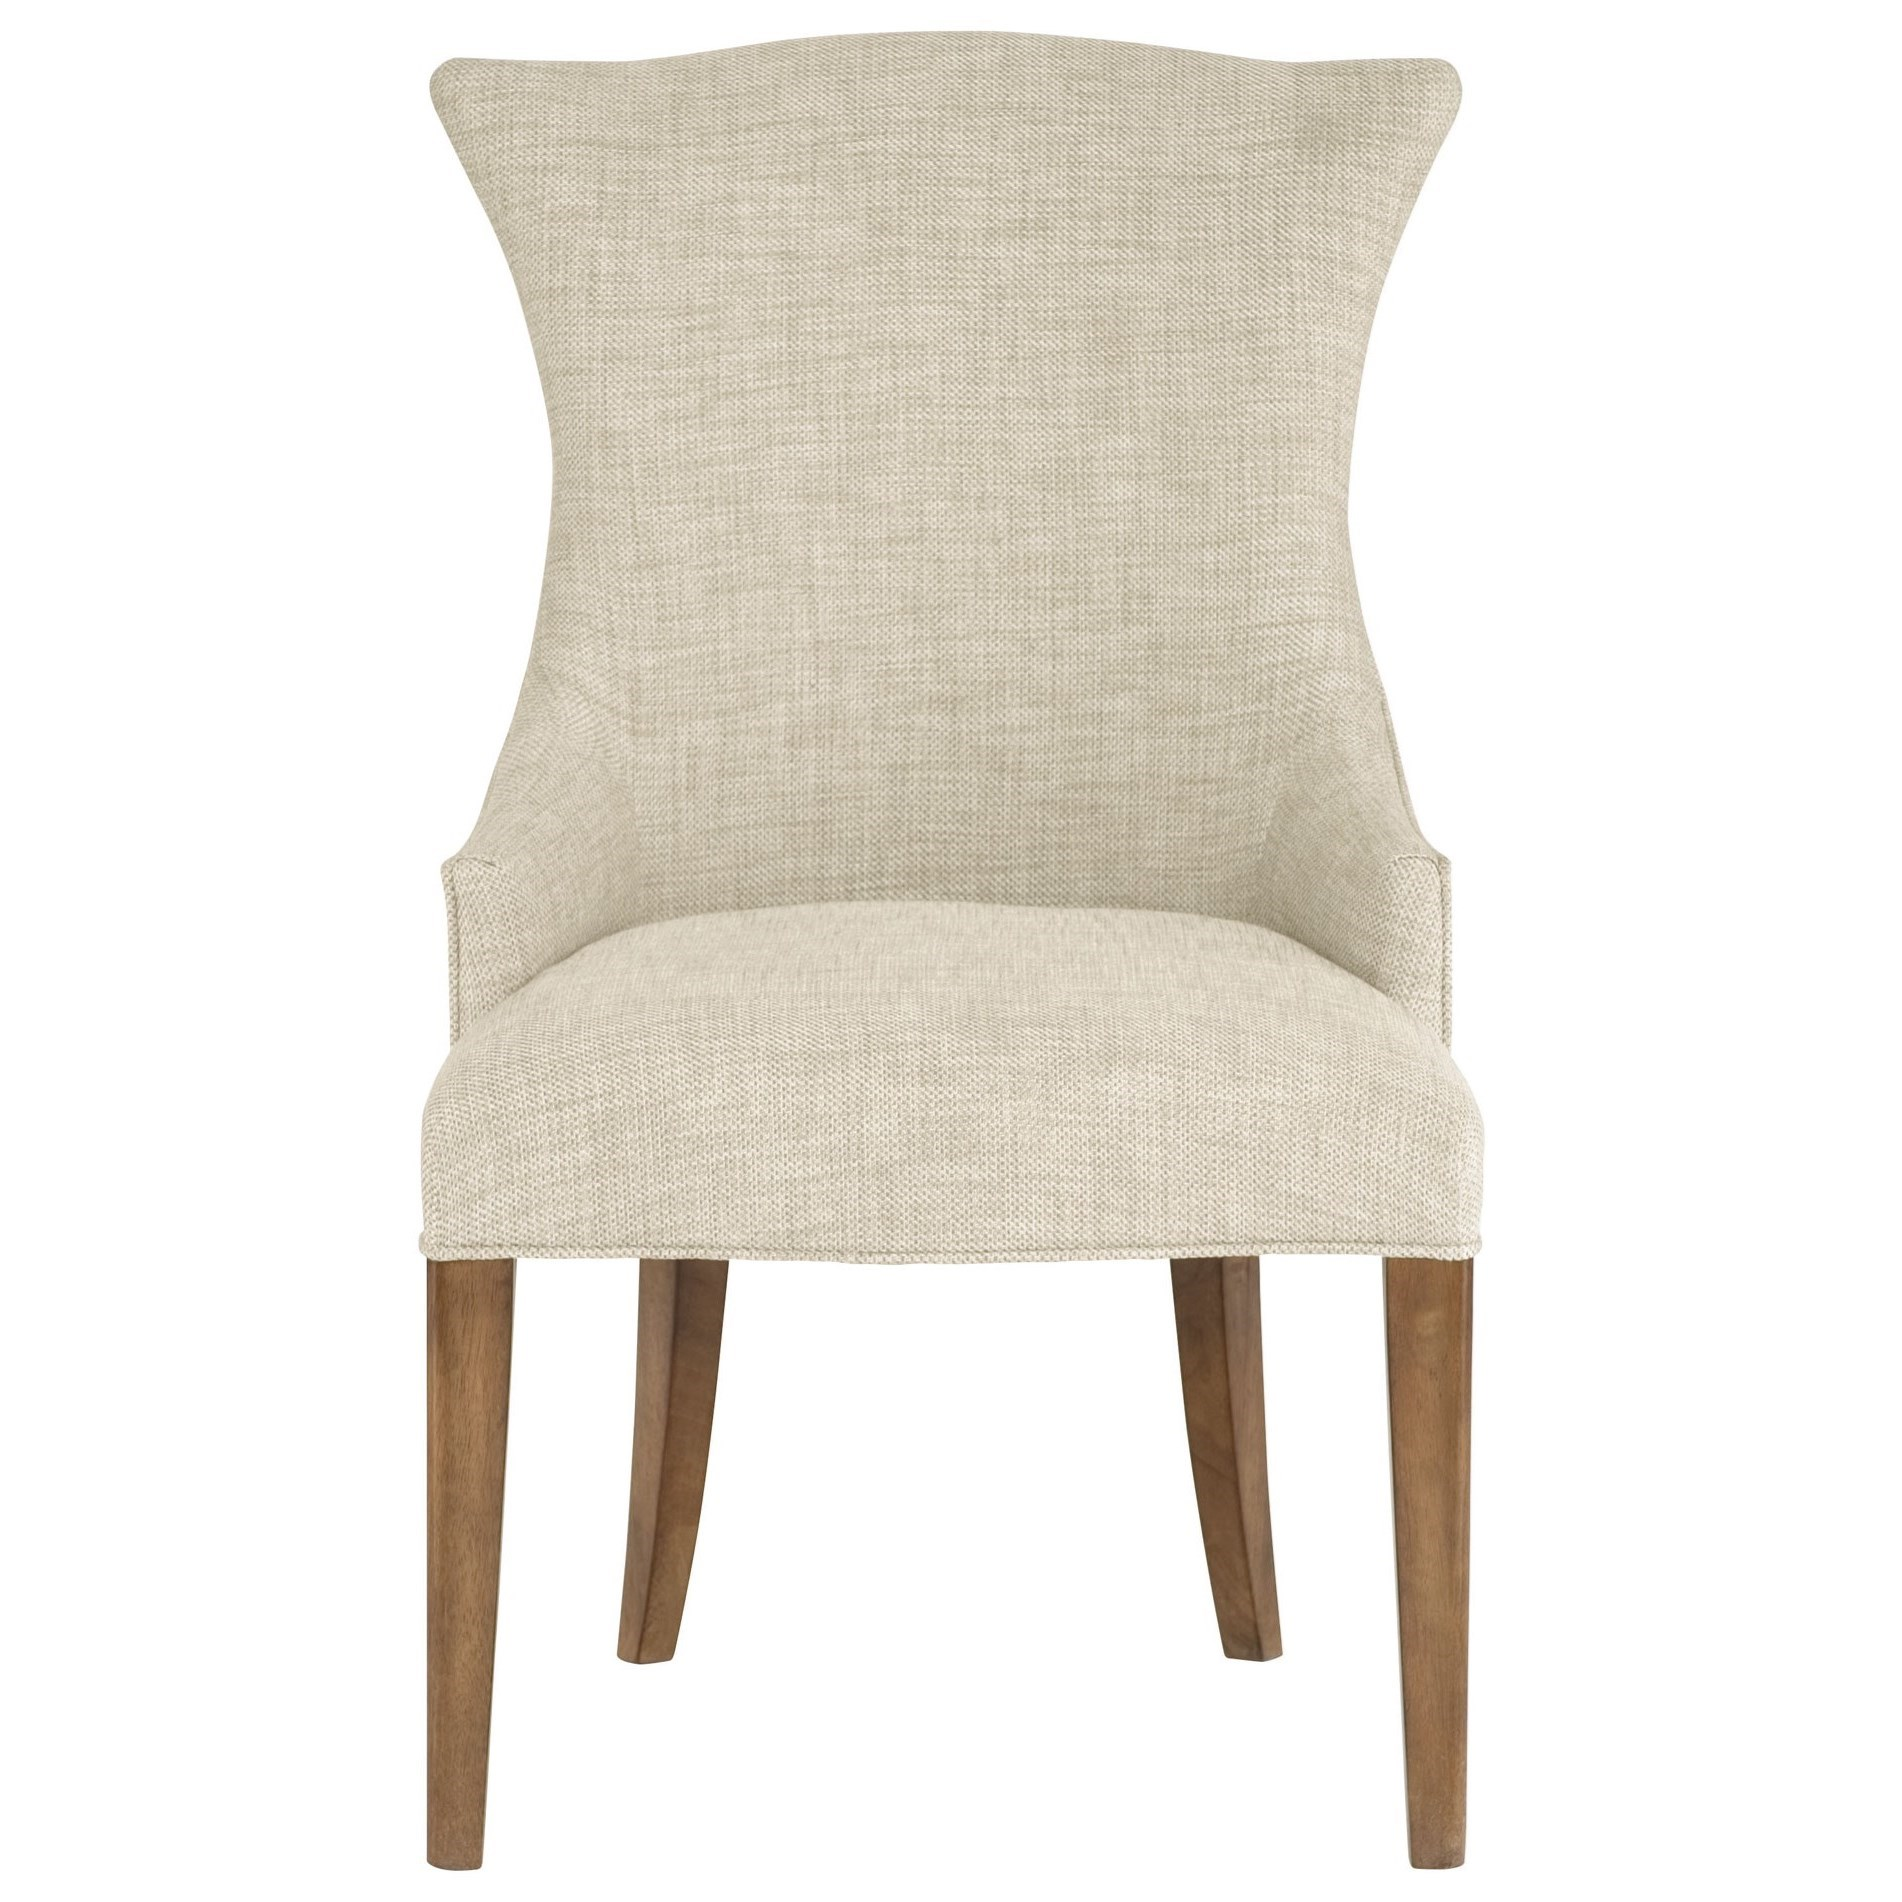 Bernhardt Soho Luxe Upholstered Arm Chair - Item Number: 368-548